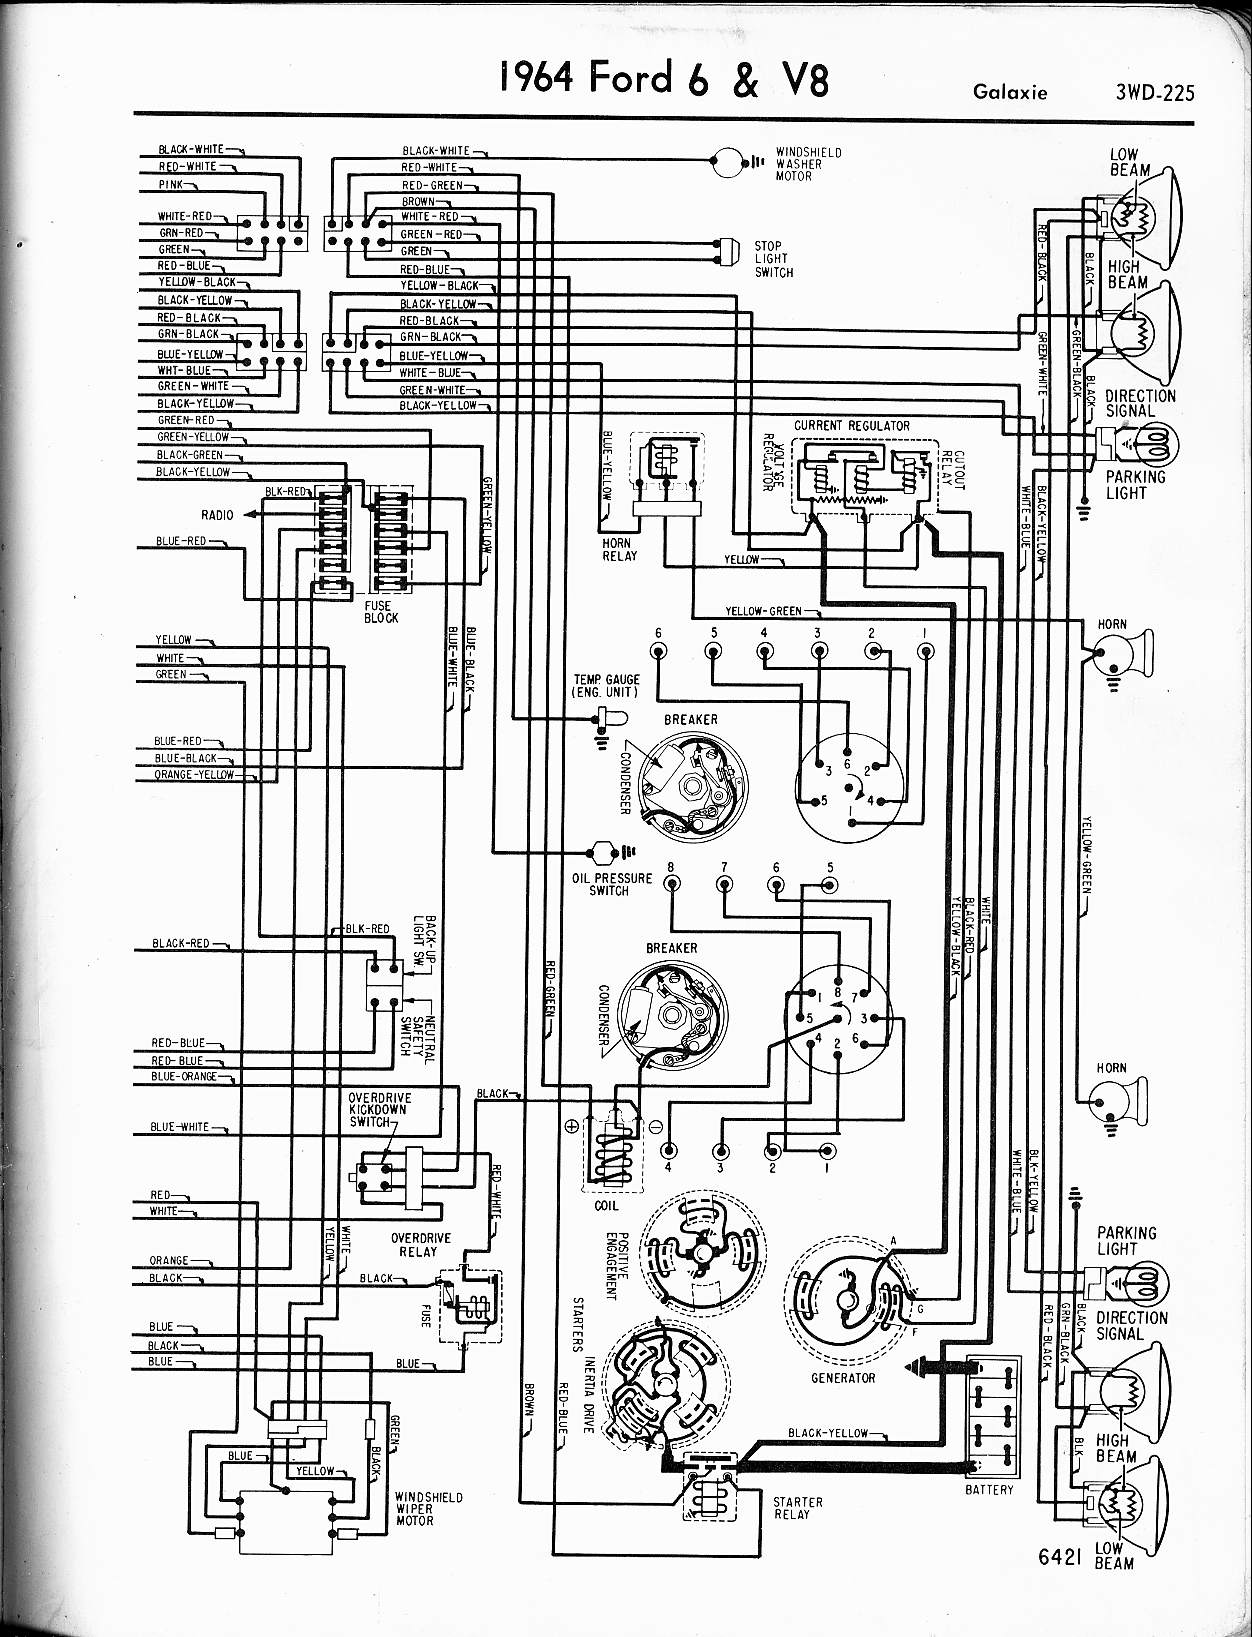 1968 Ford Galaxie Wiring Diagram Trusted 57 65 Diagrams 05 Focus